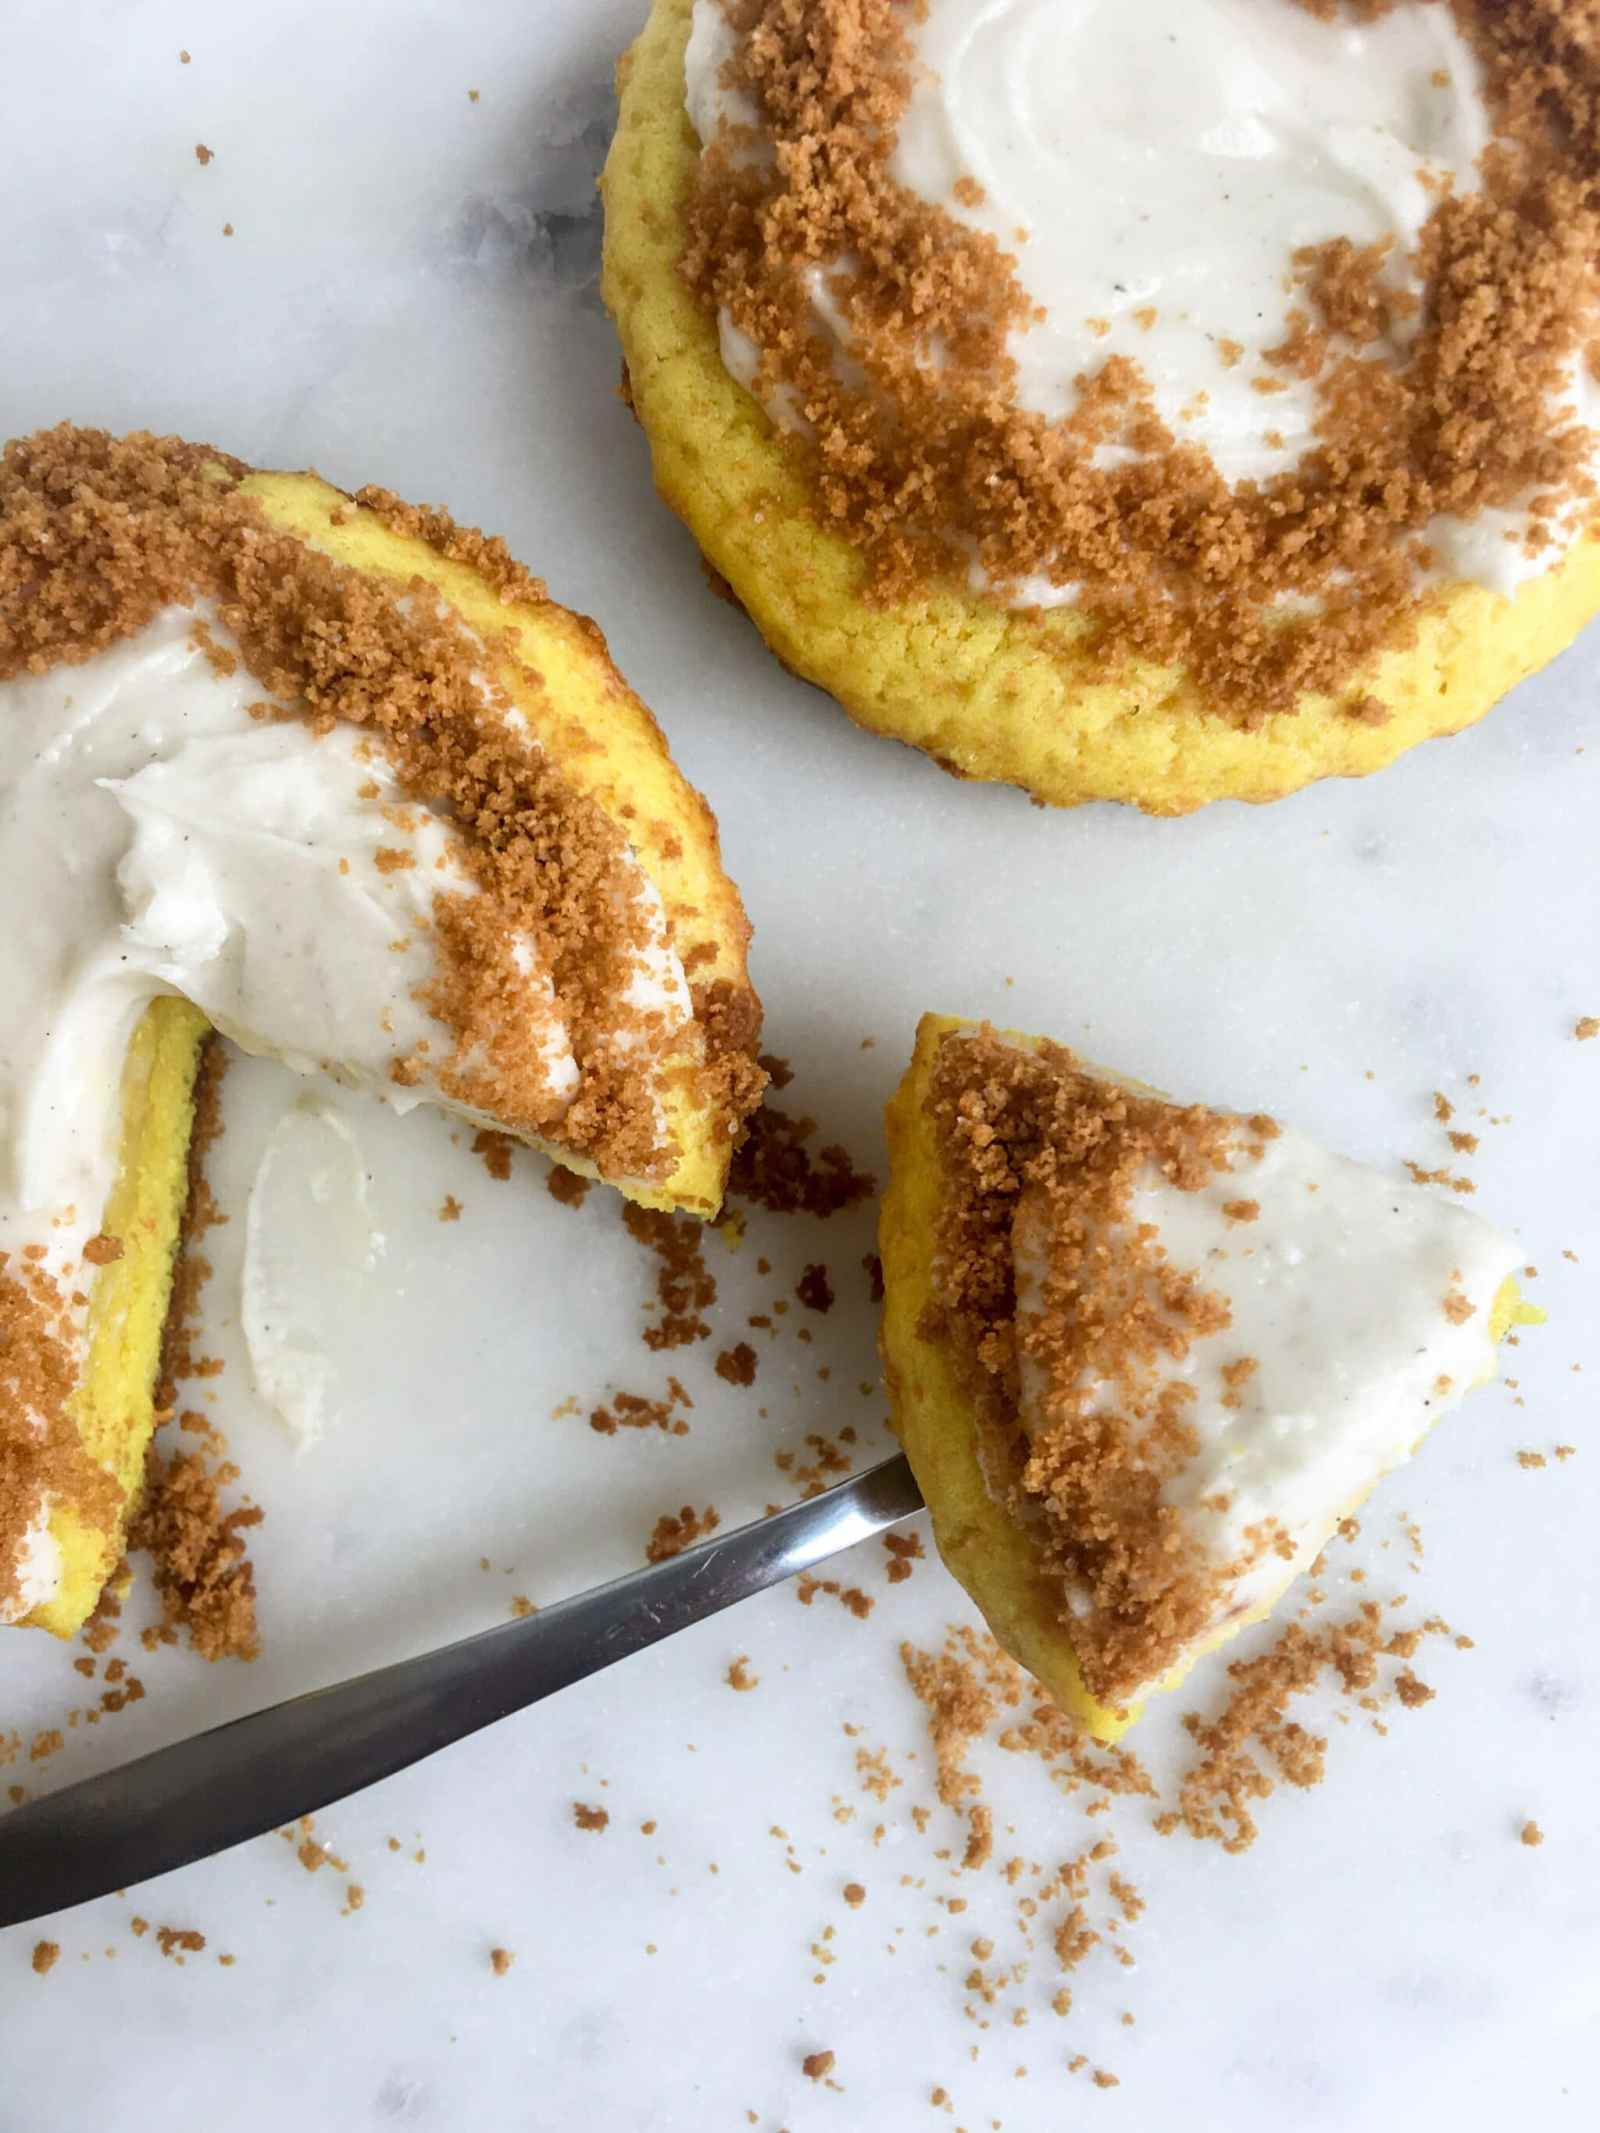 Healthyish Lemon Graham Cake, When Key Lime Pie and Lemon Loaf Cross Pollinate